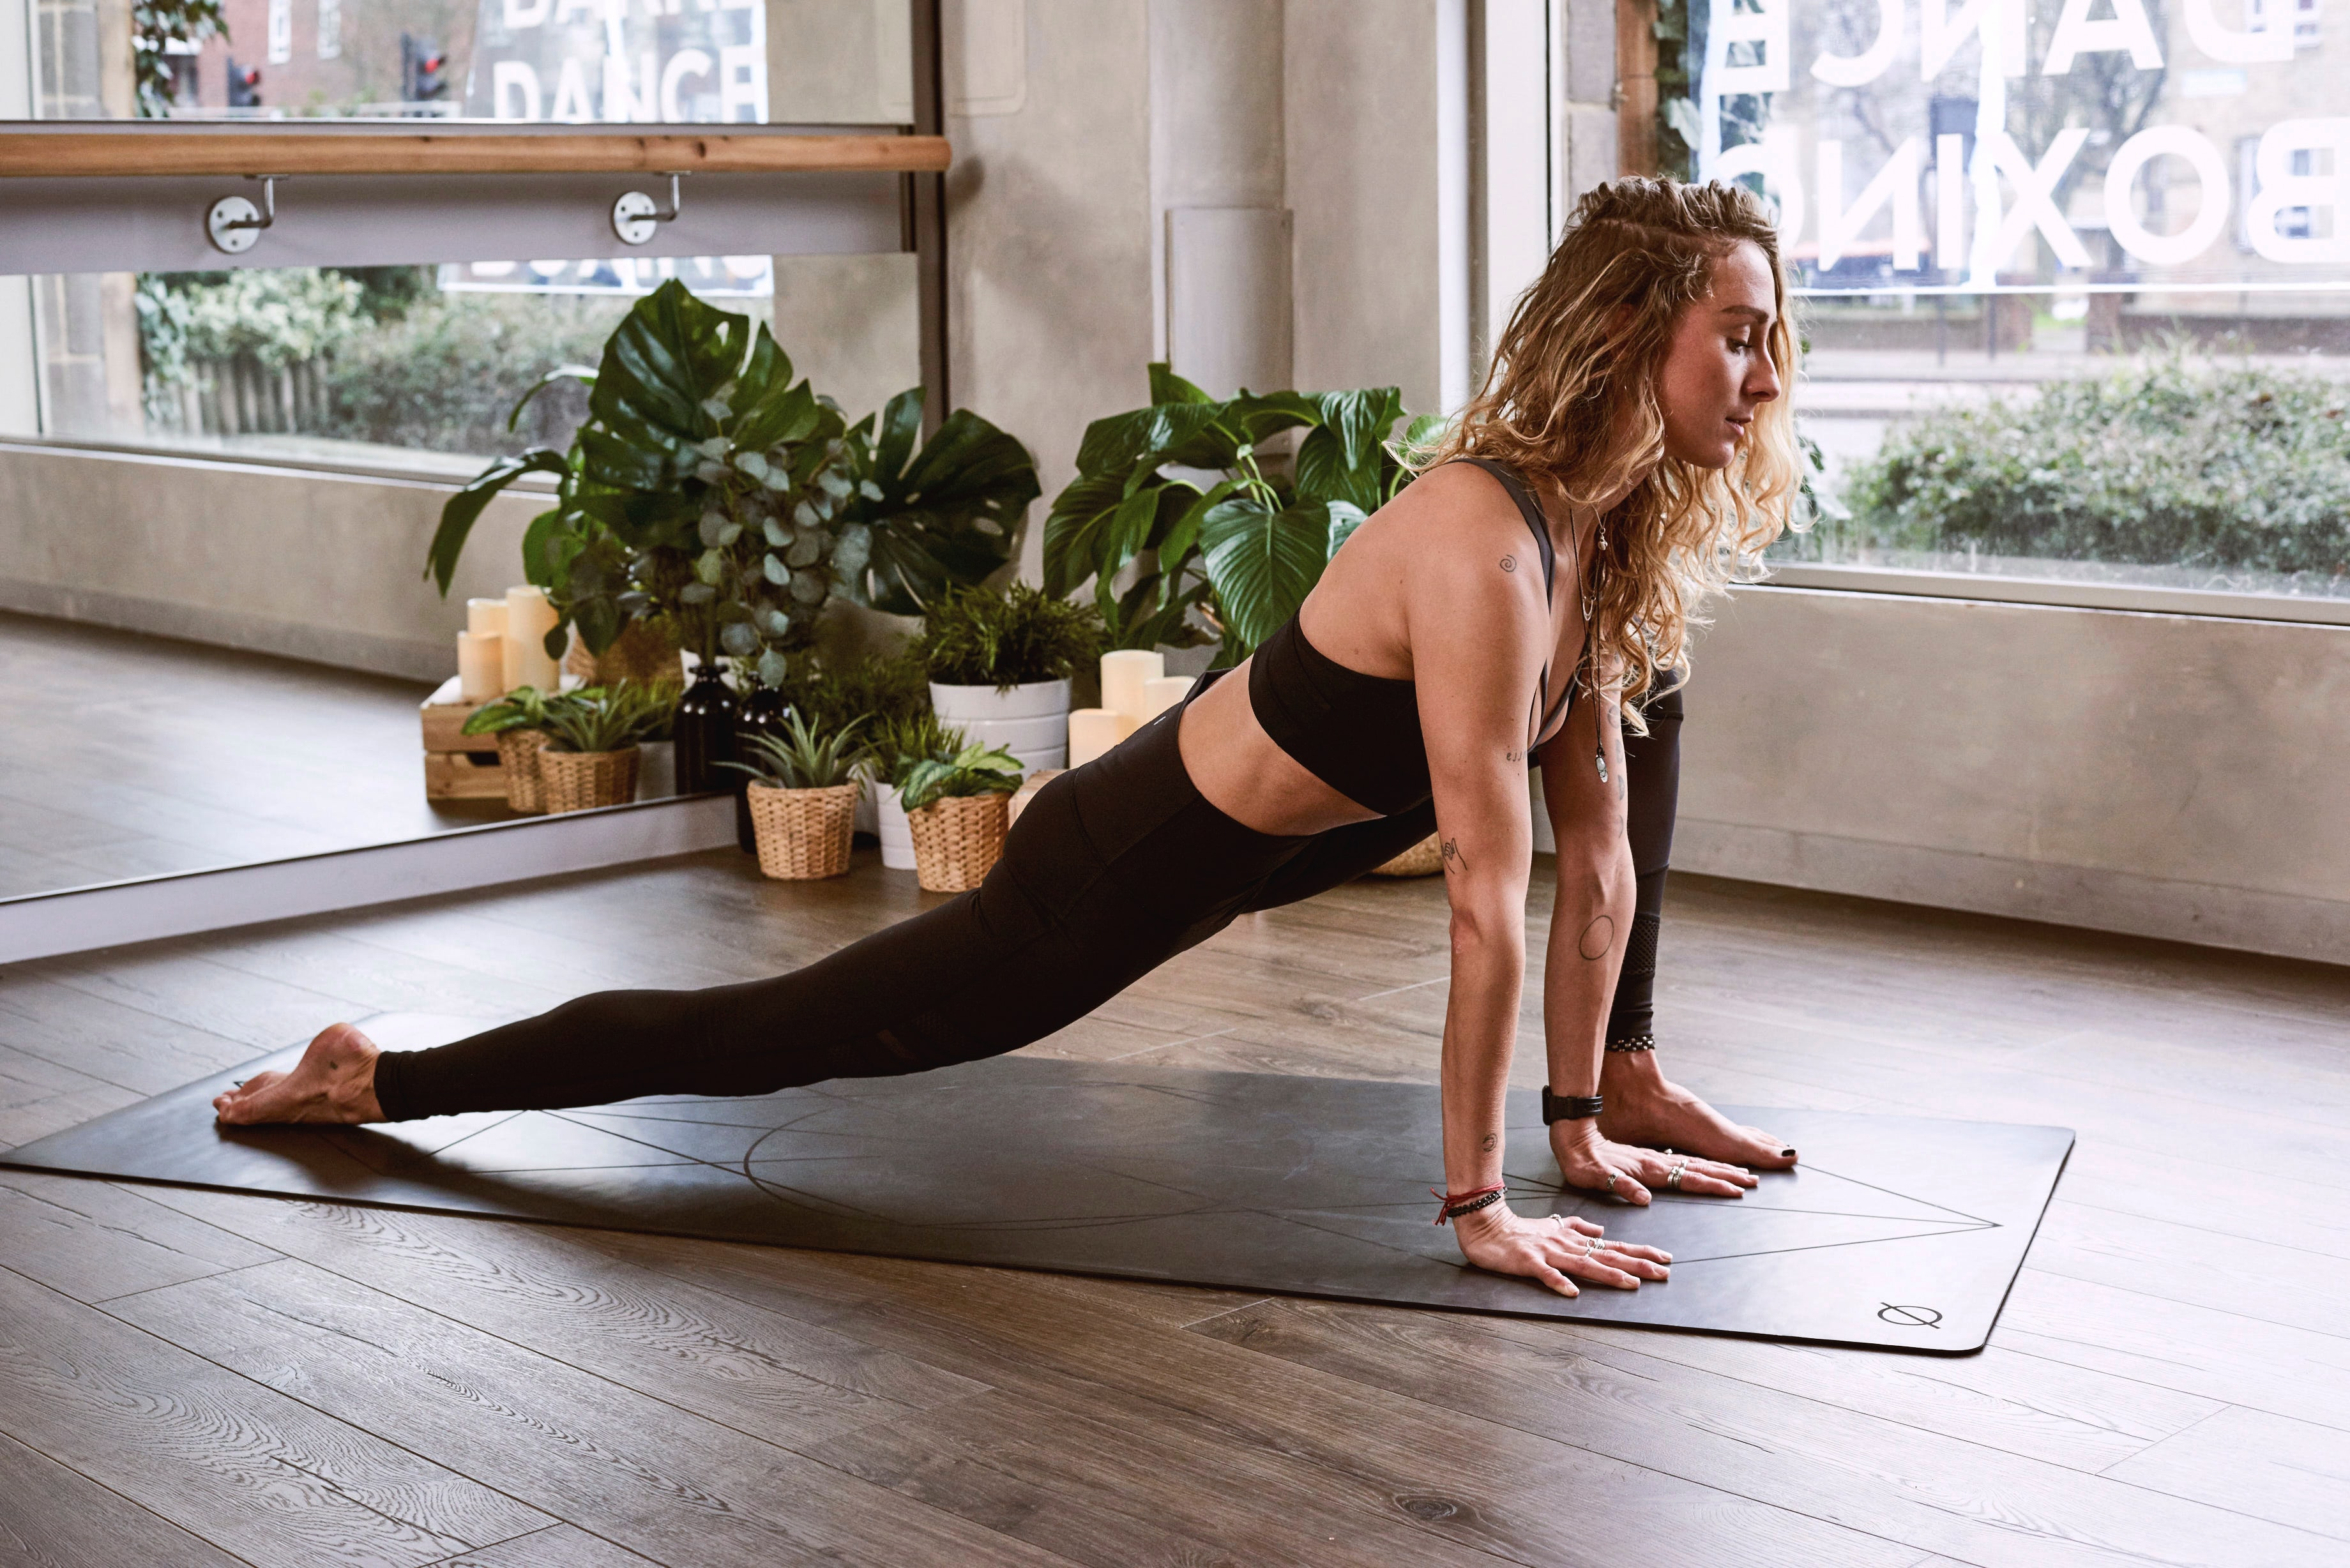 At-home fitness figures to see a boost post-COVID-19.